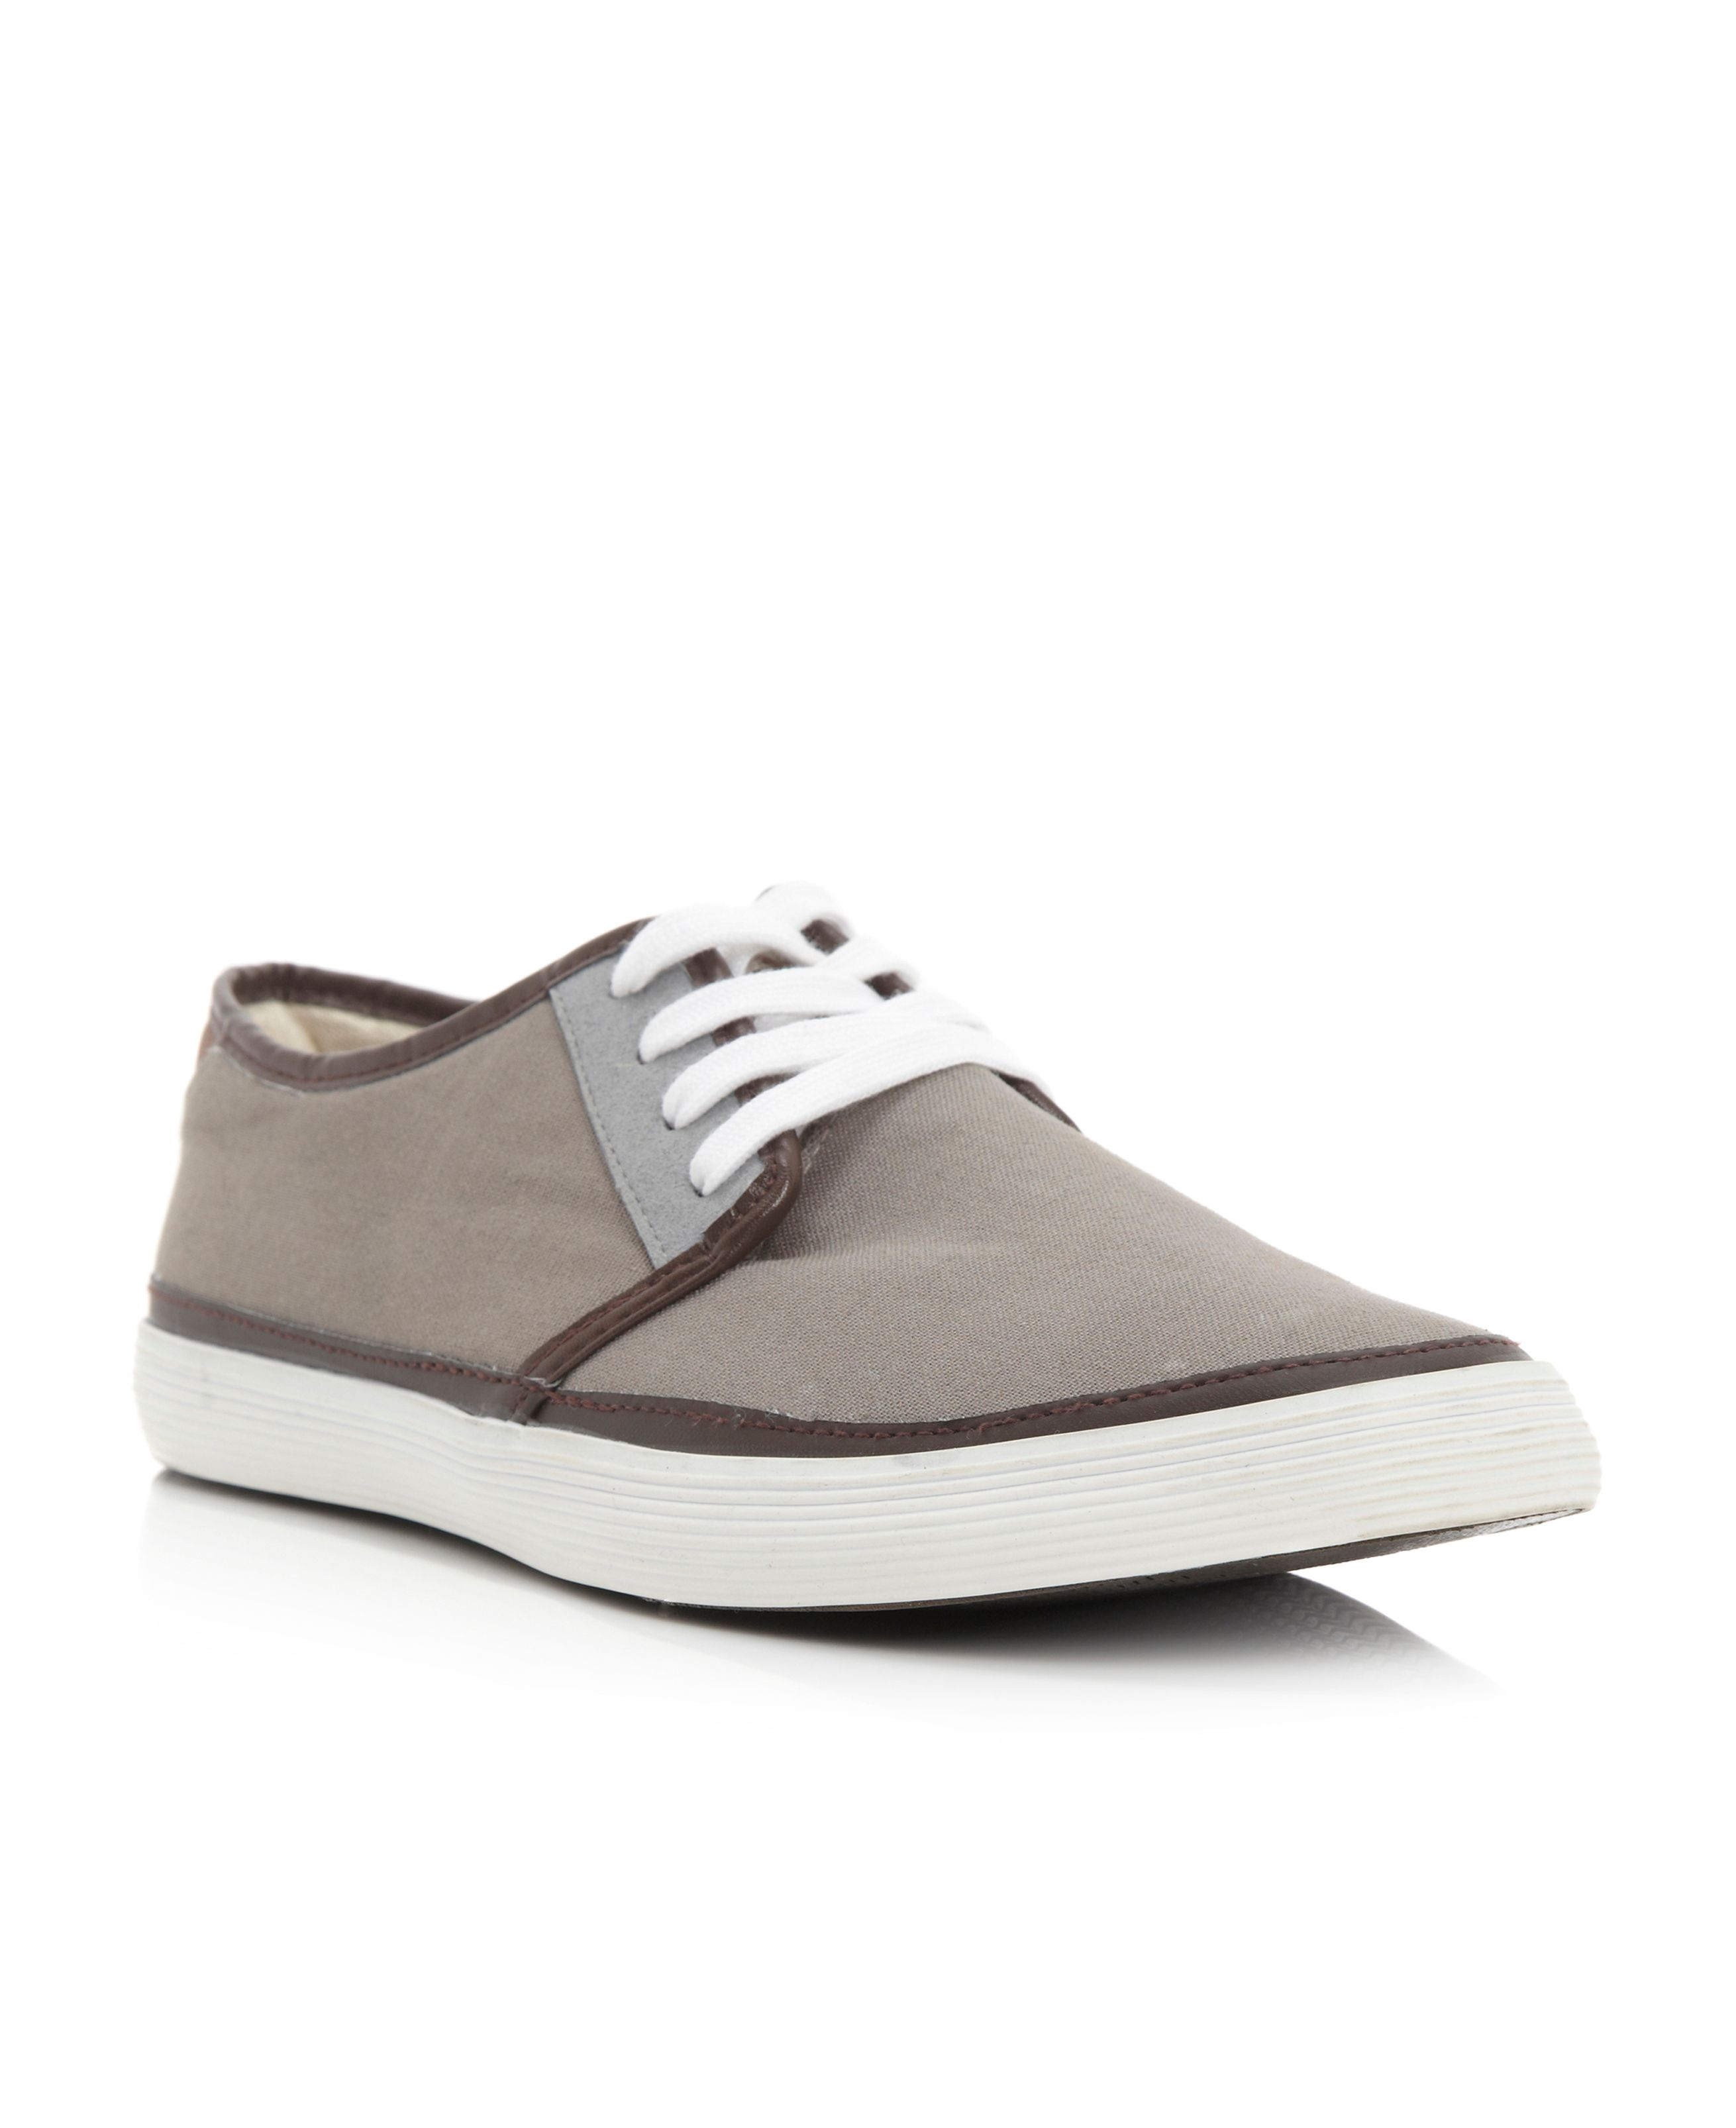 Brunswick canvas lace up shoe